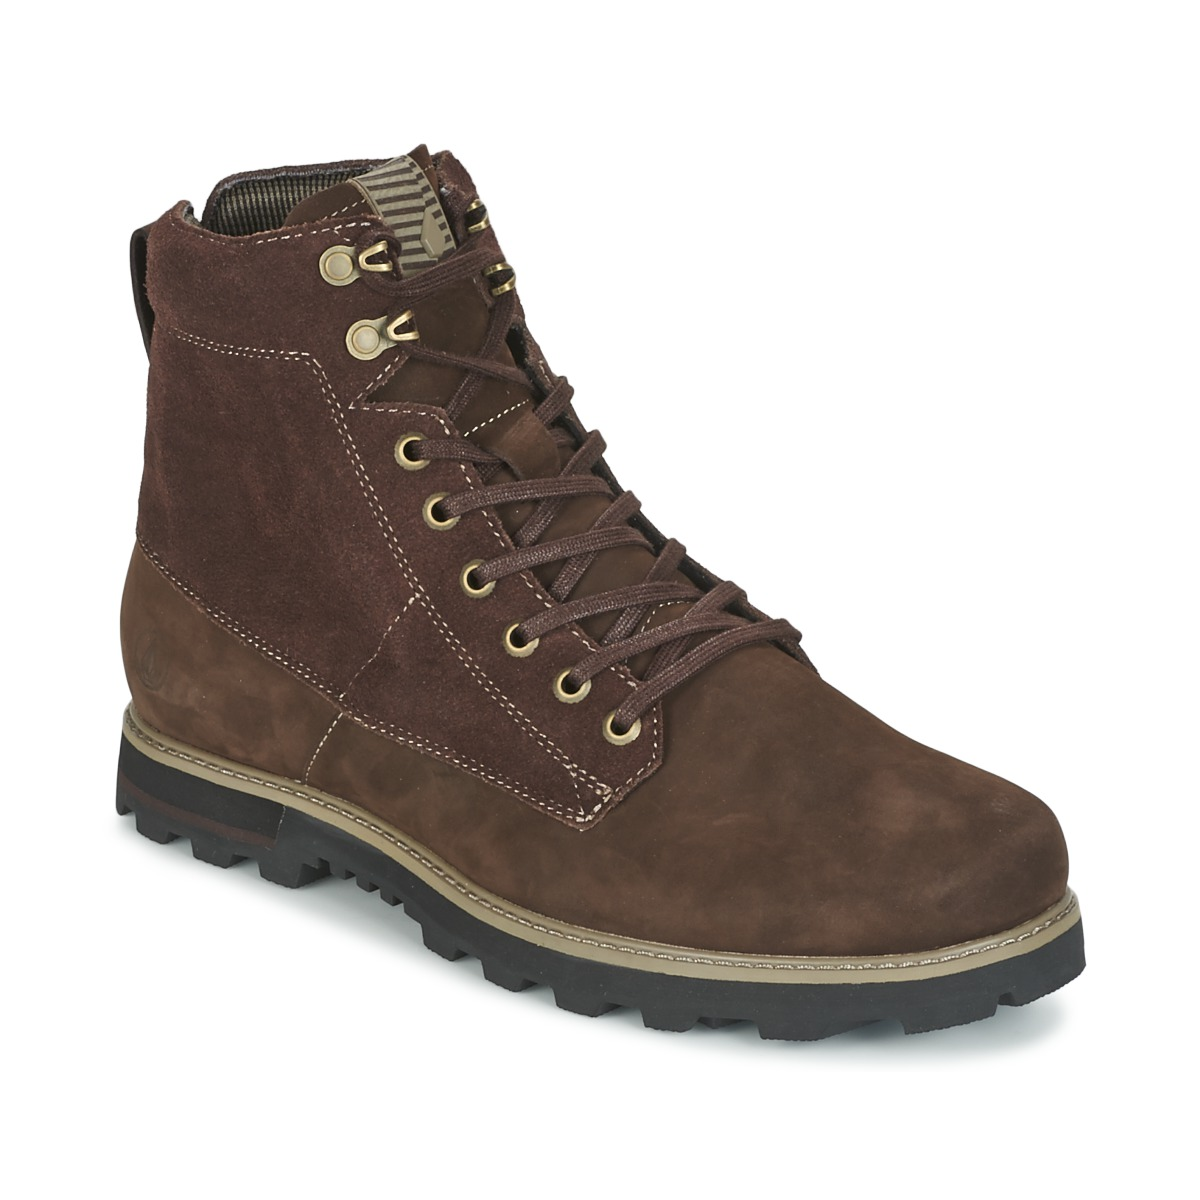 Volcom SMITHINGTON BOOT Marron